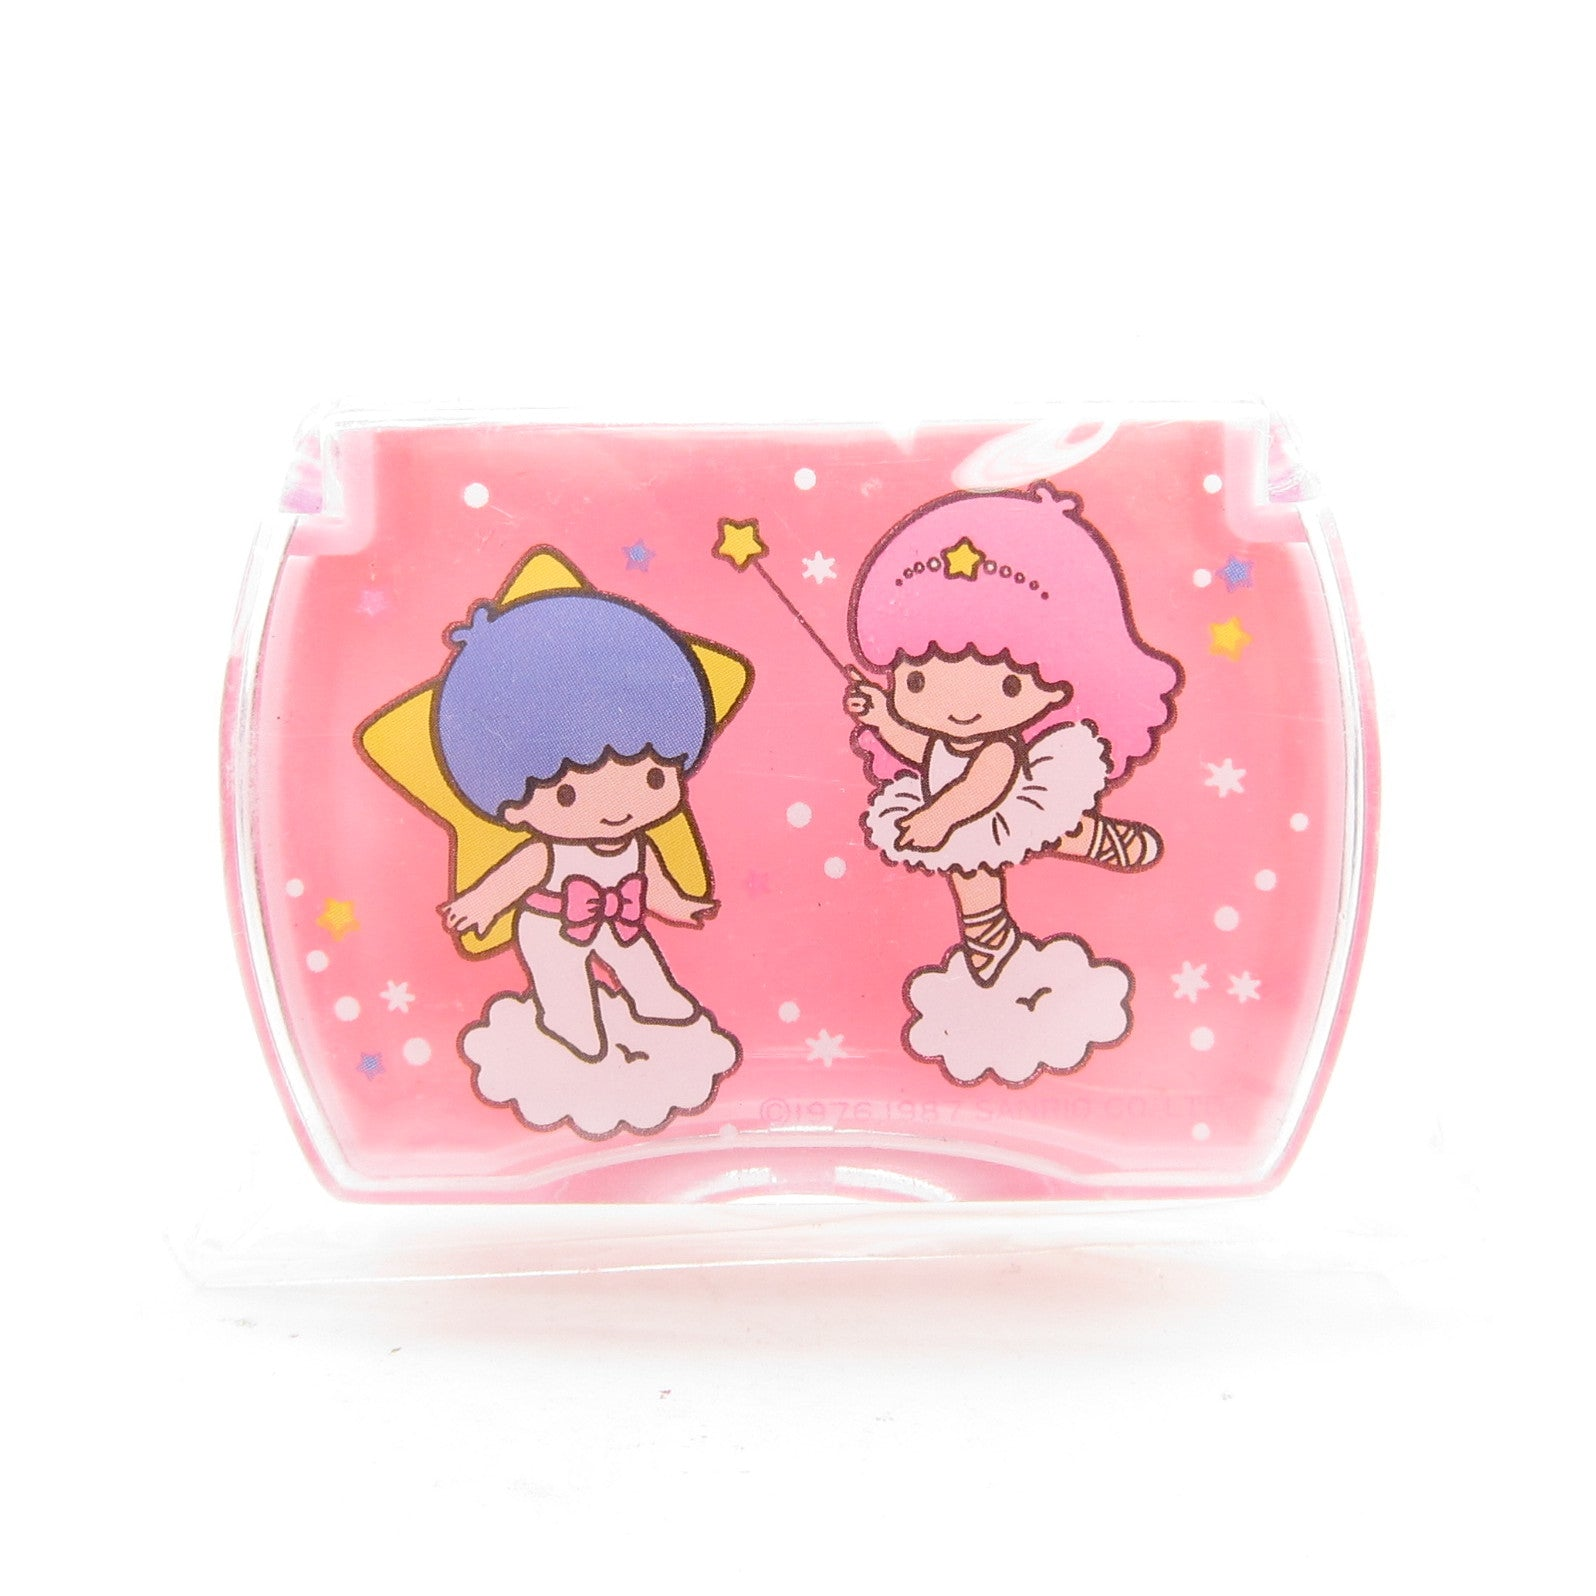 Little Twin Stars miniature plastic container or pill box